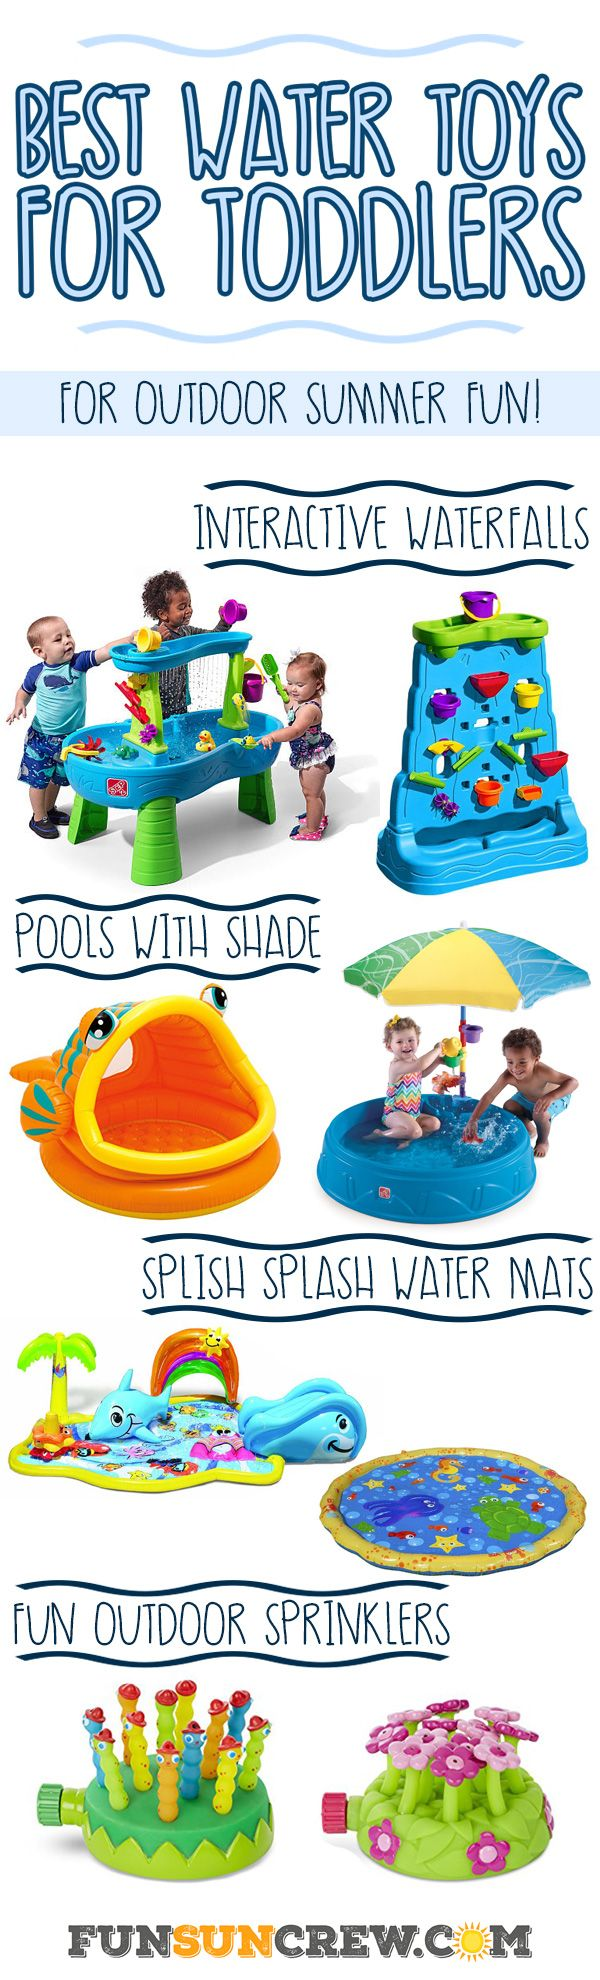 Best Water Toys for Toddlers - Outdoor Toys for Summer 2018 | All ...